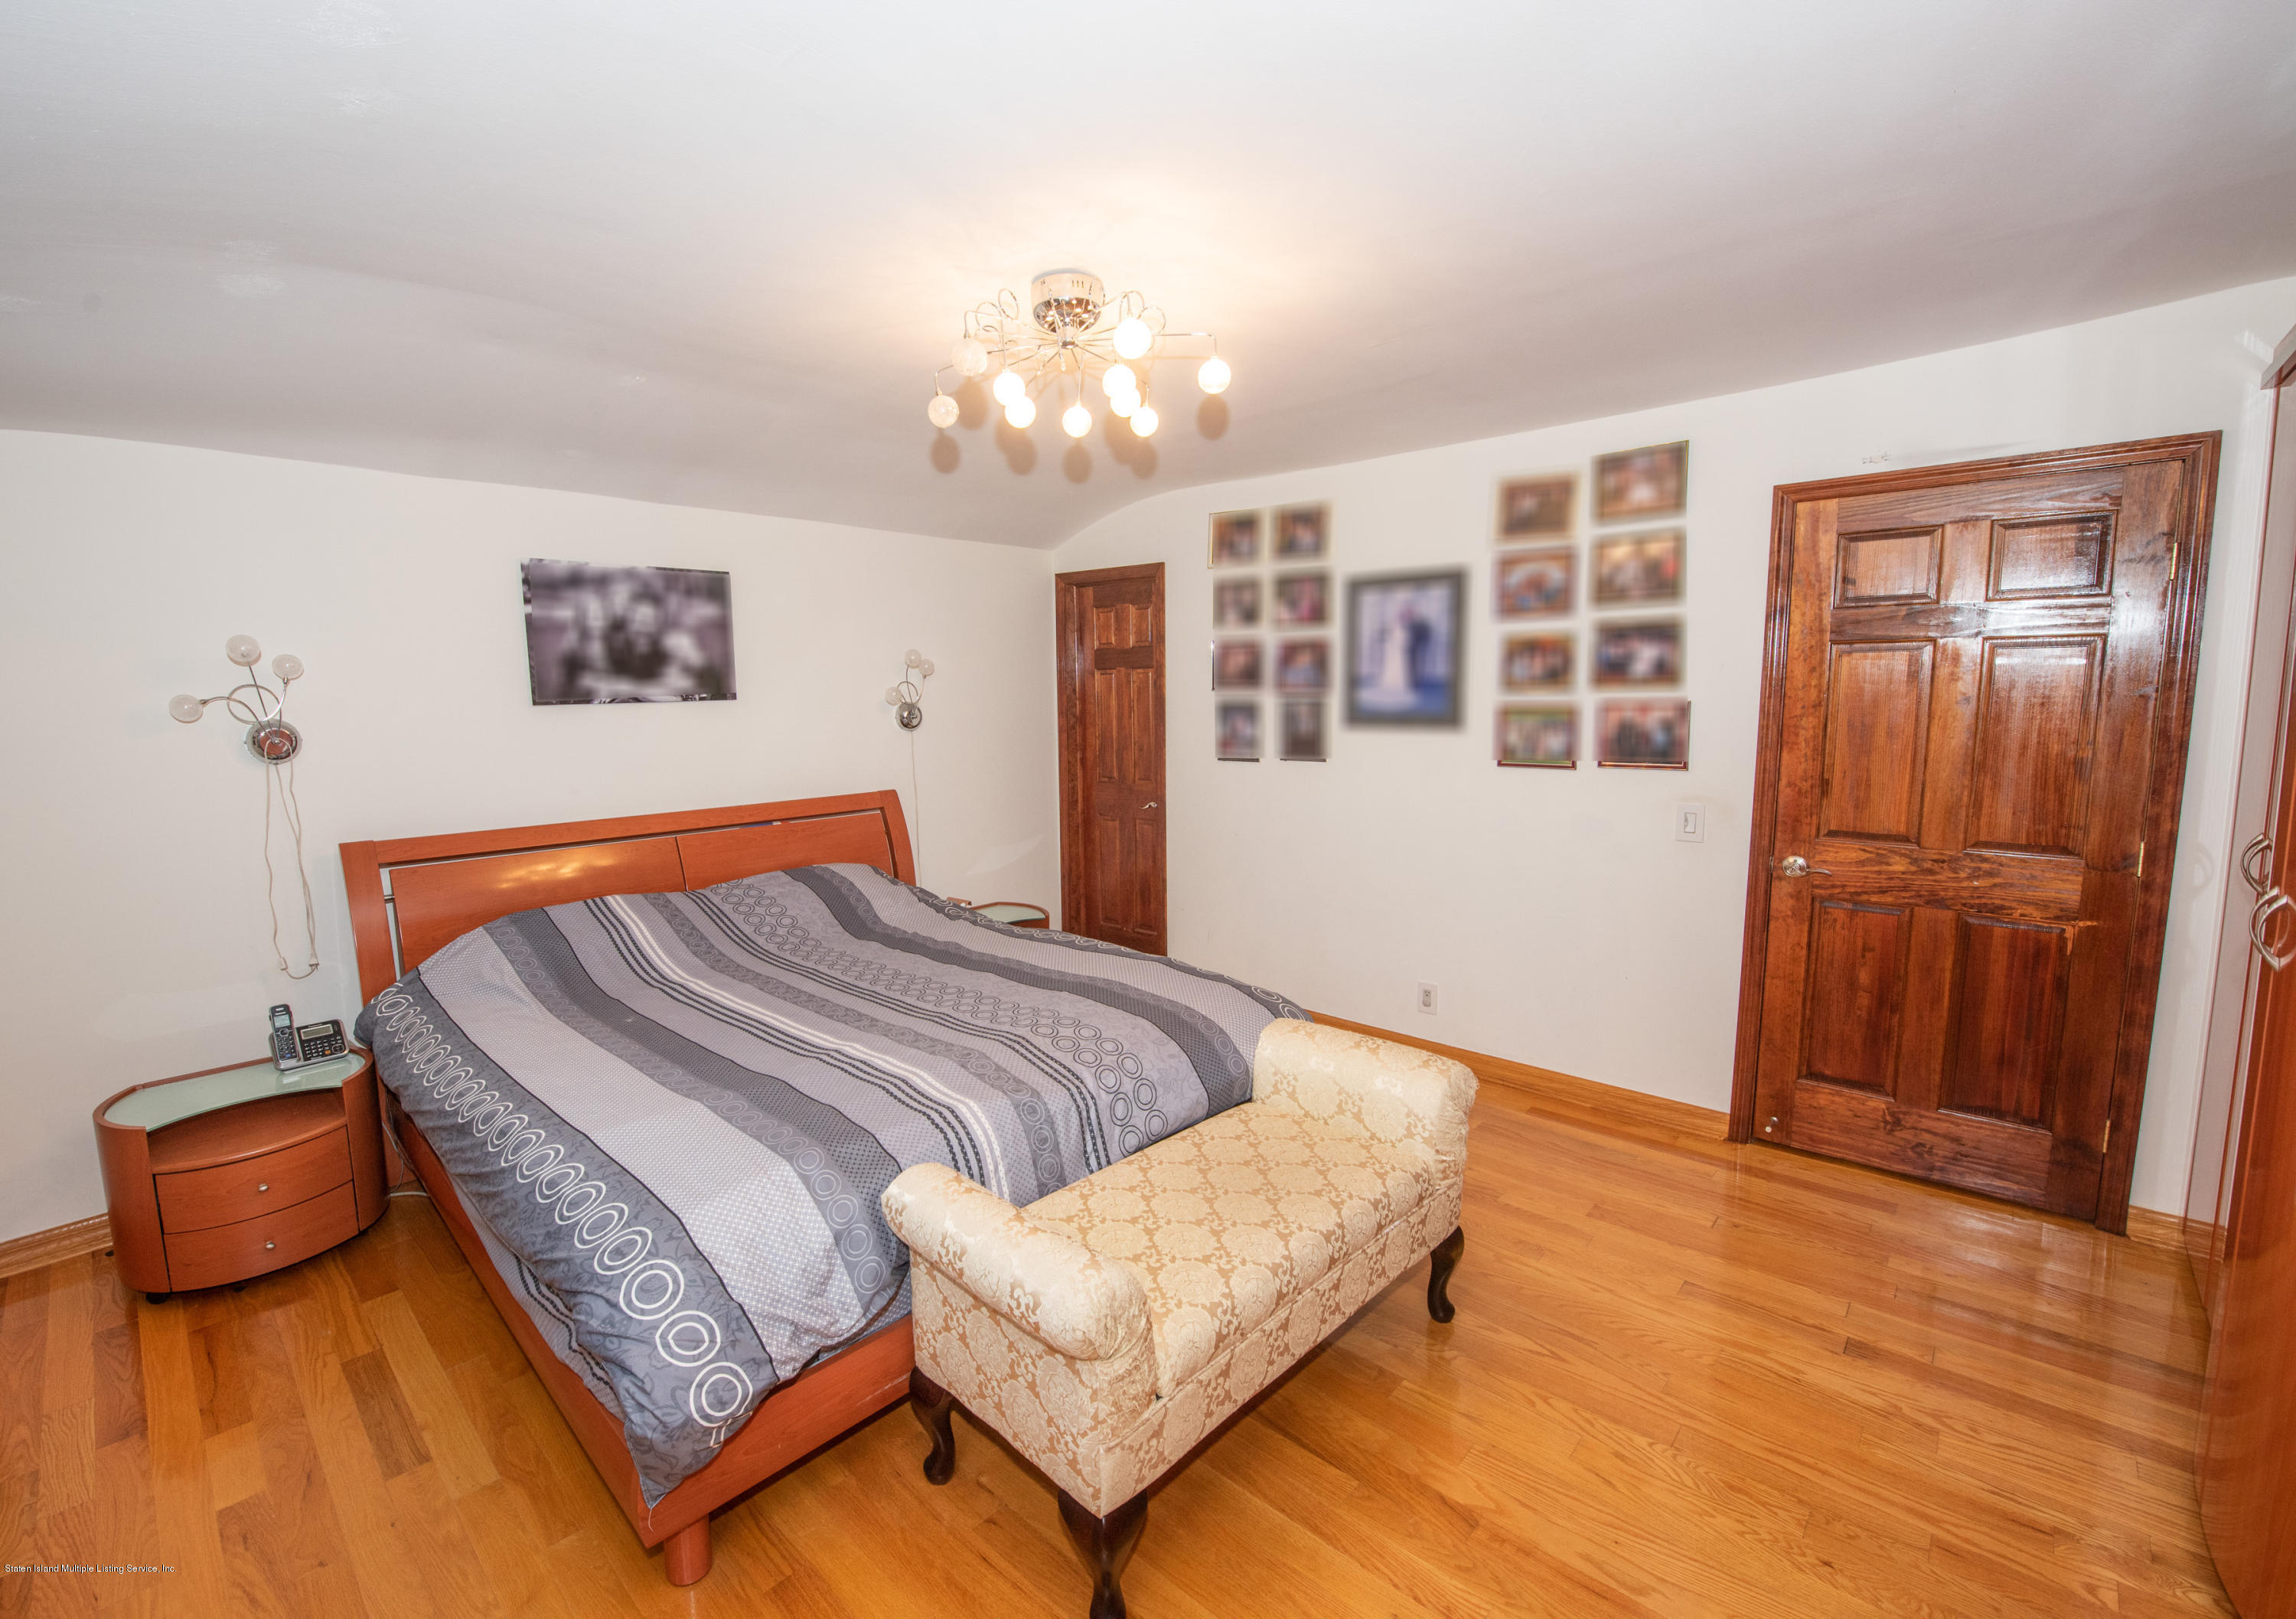 Single Family - Semi-Attached 76 Mcveigh Avenue  Staten Island, NY 10314, MLS-1133370-19